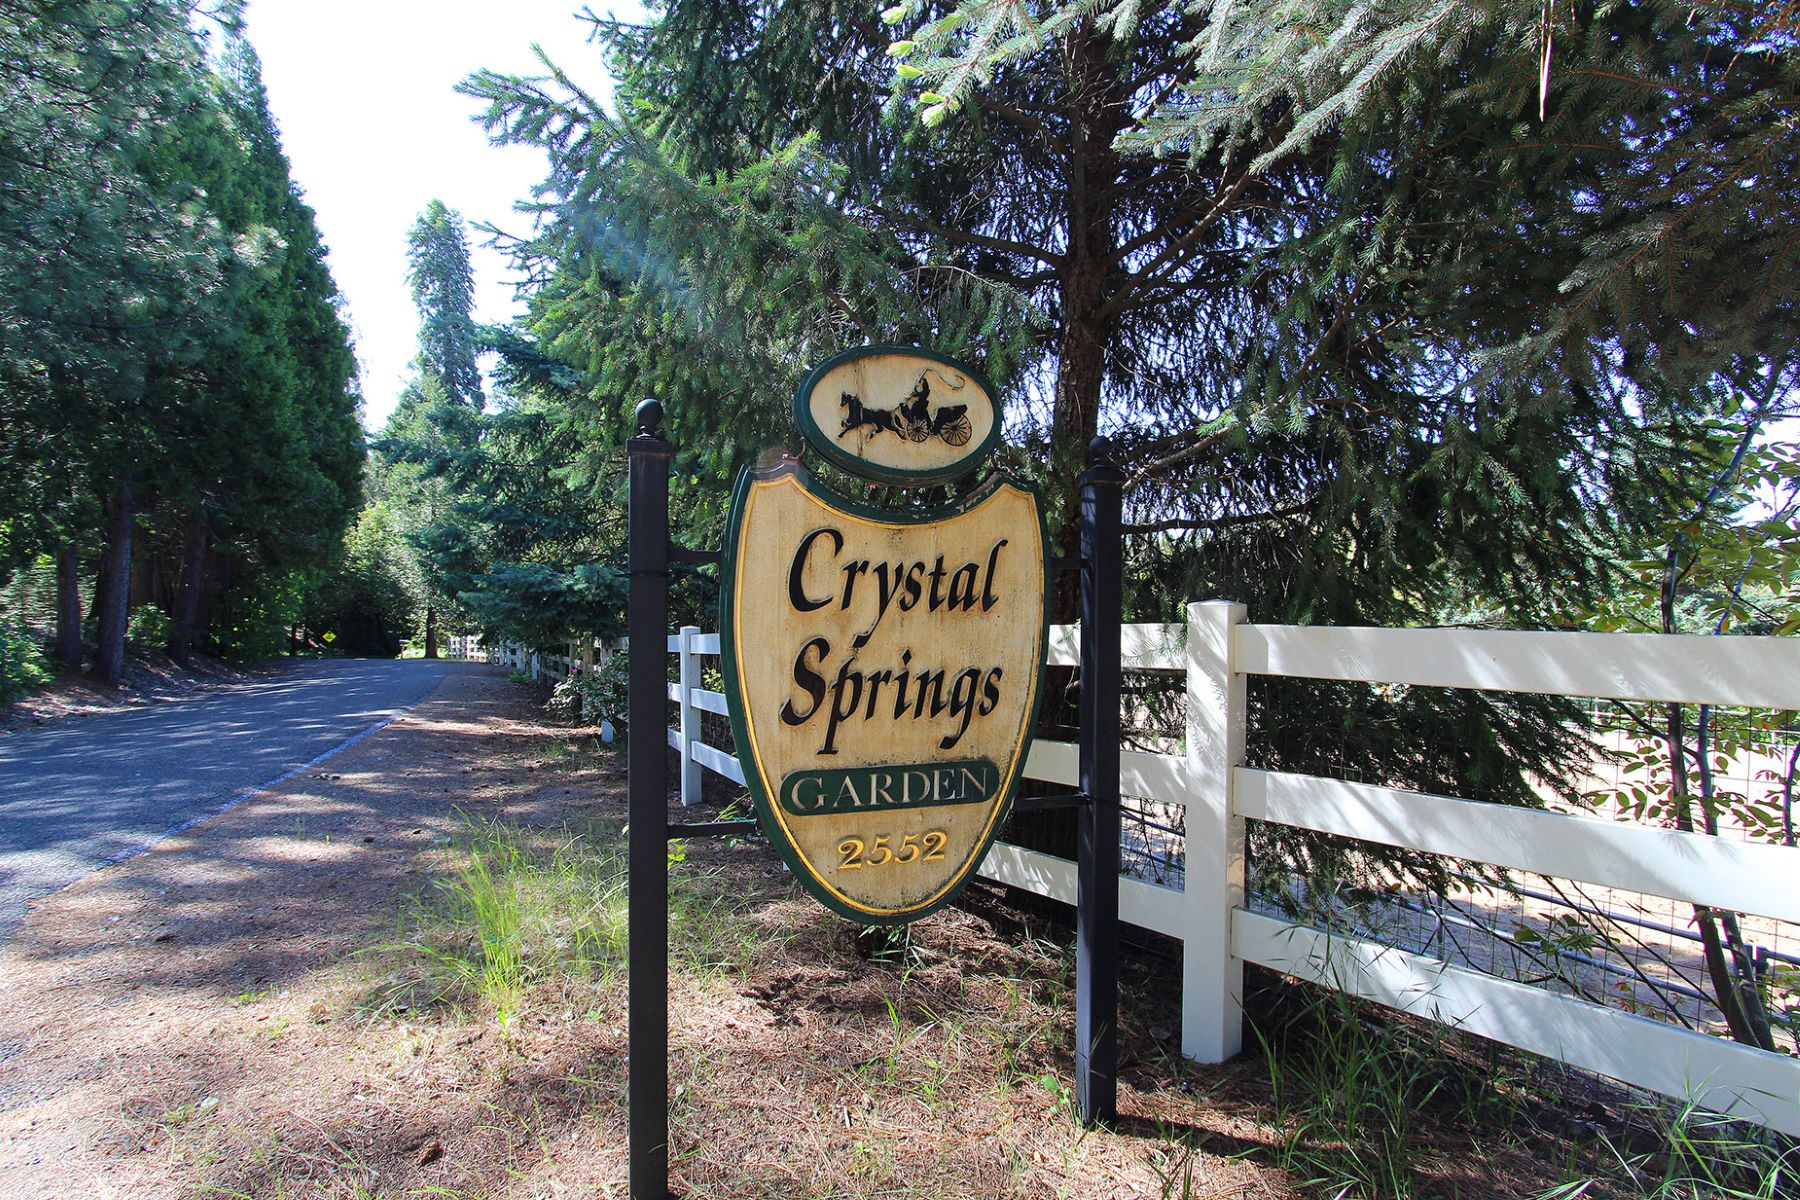 Additional photo for property listing at 2552 Crystal Springs Road  Camino, California 95709 United States